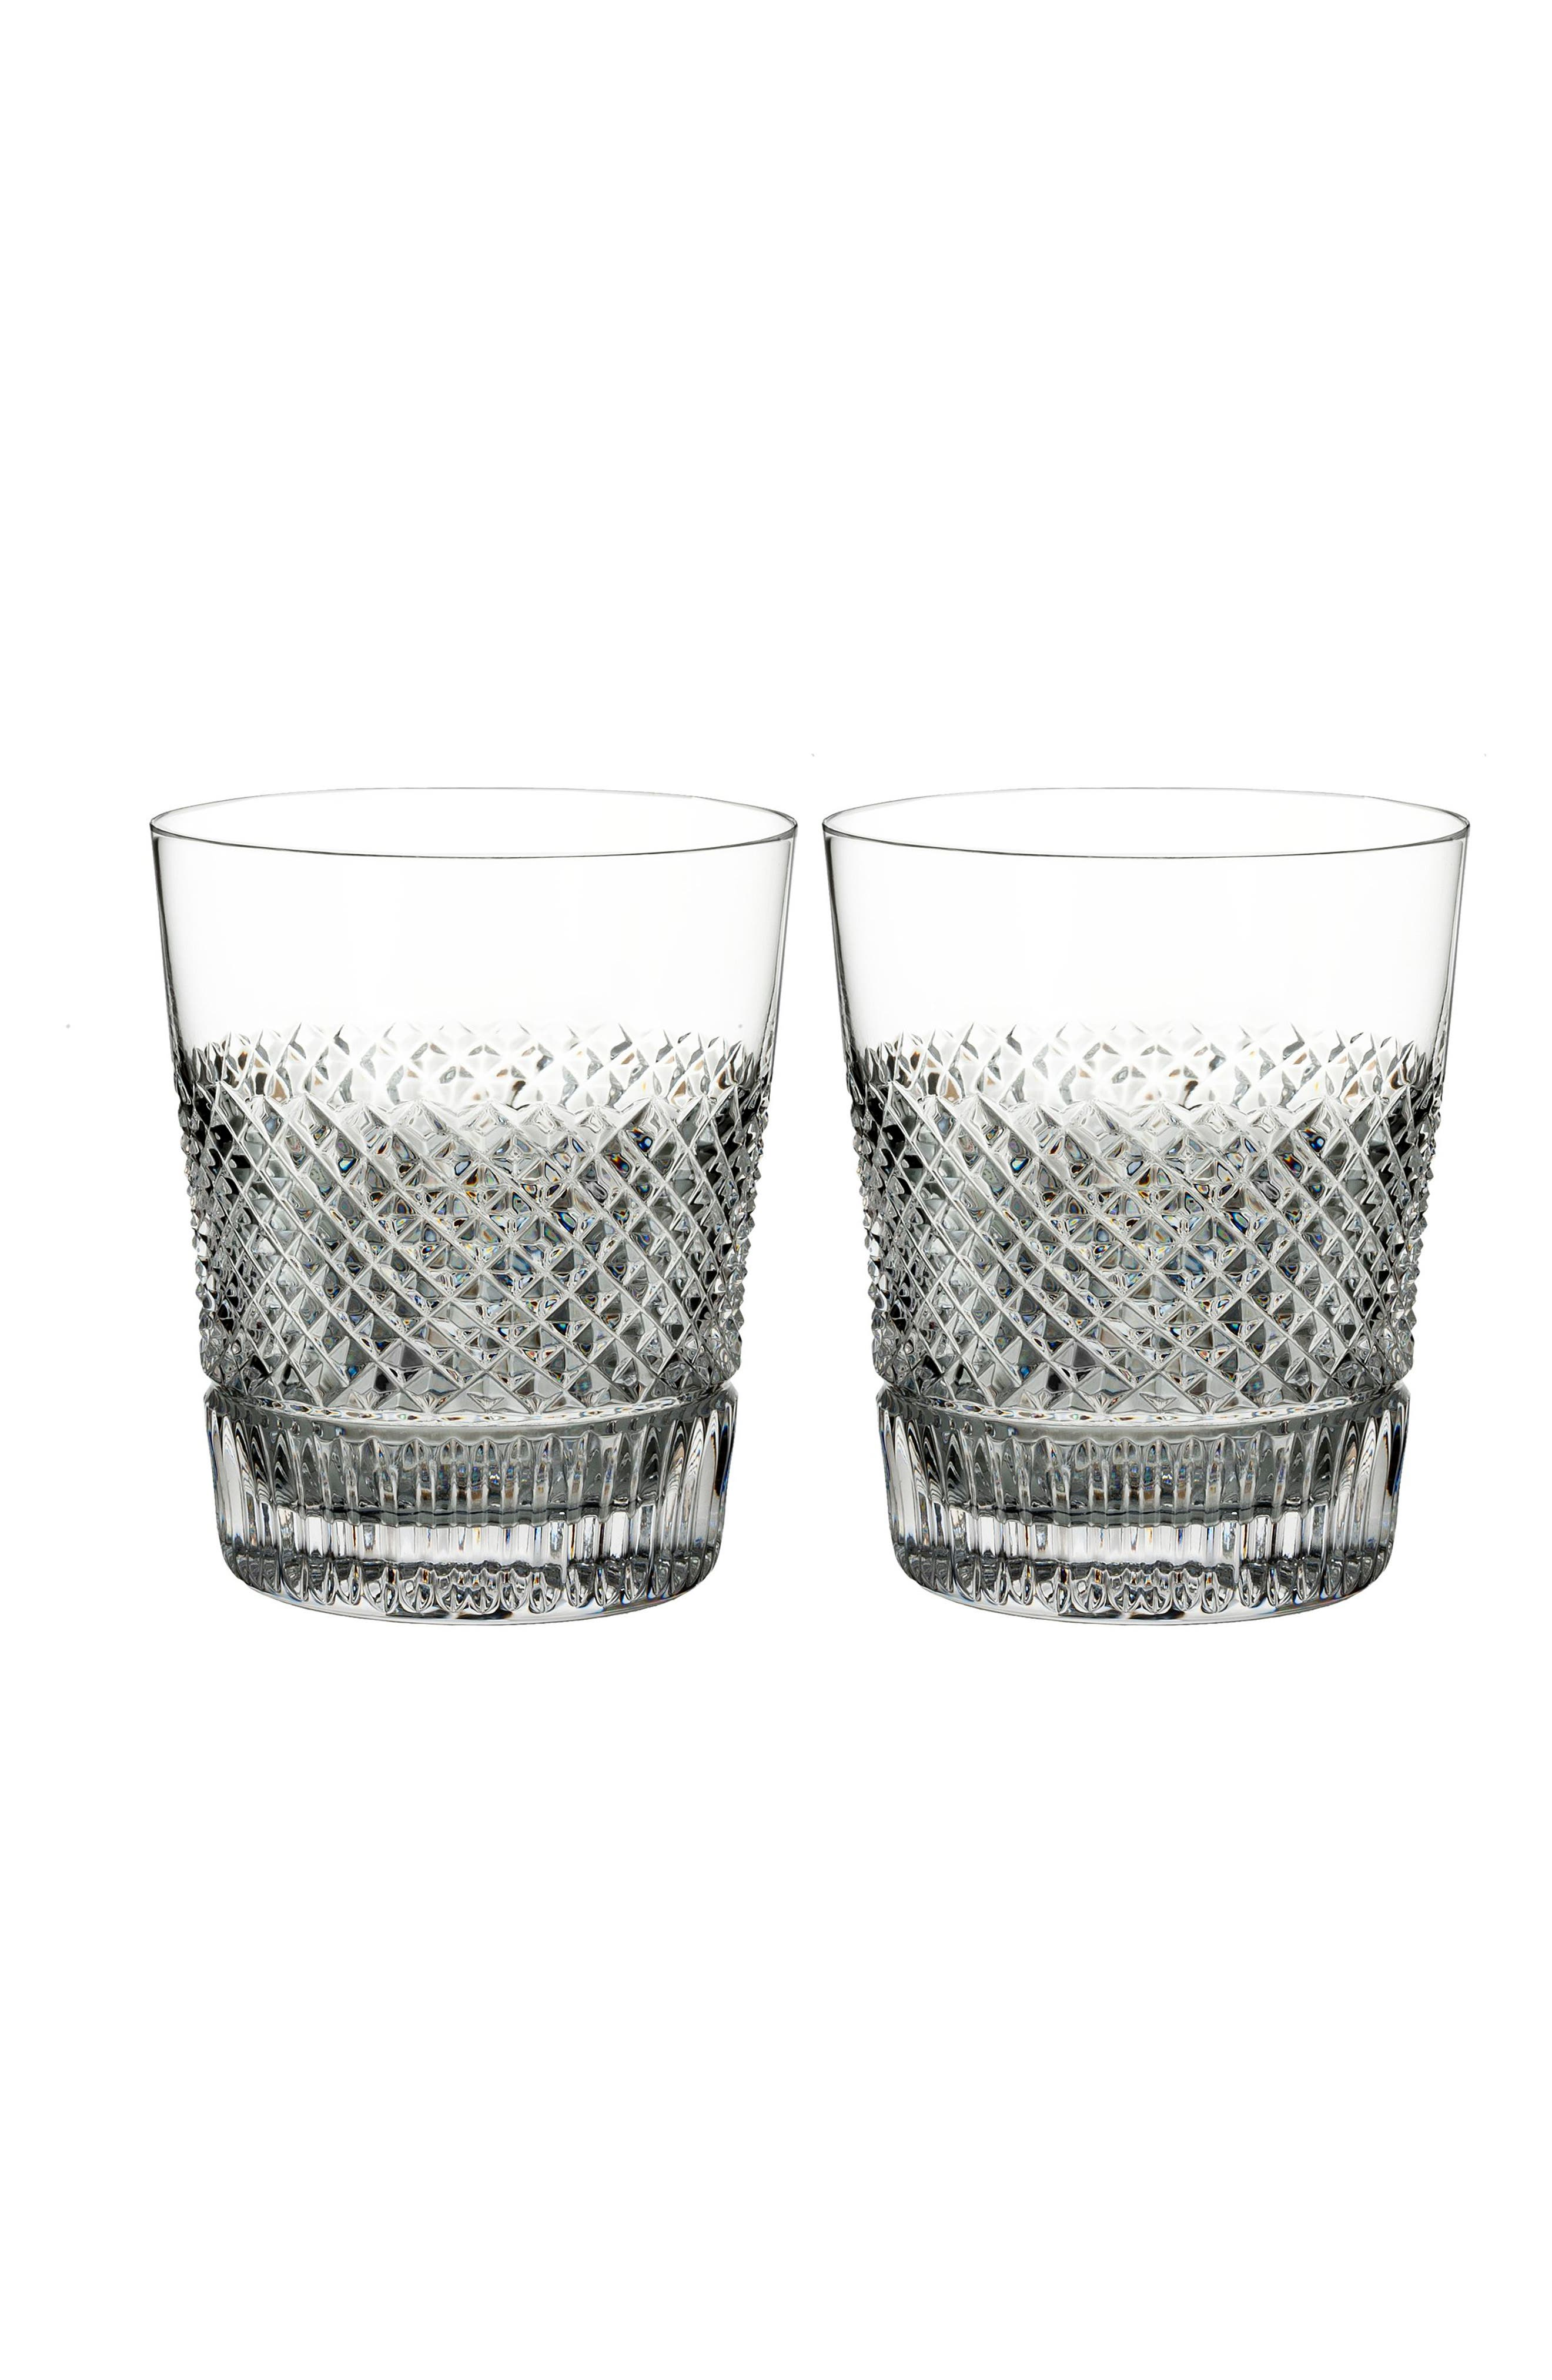 Diamond Line Set of 2 Leaded Crystal Double Old Fashioned Glasses,                             Main thumbnail 1, color,                             DIAMOND LINE